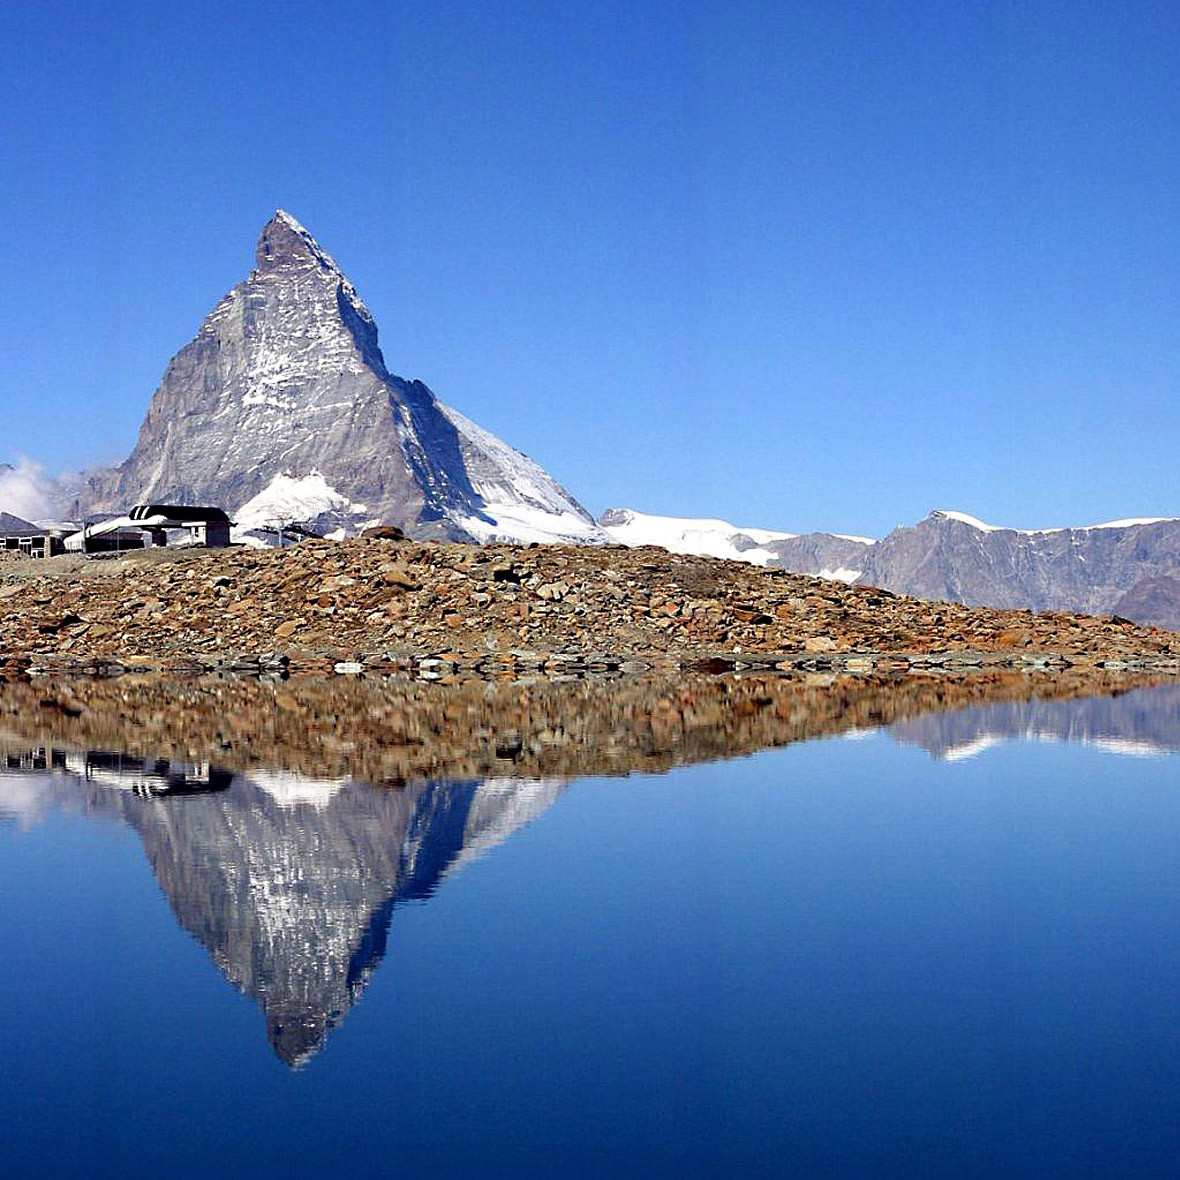 swiss-made-matterhorn-4478